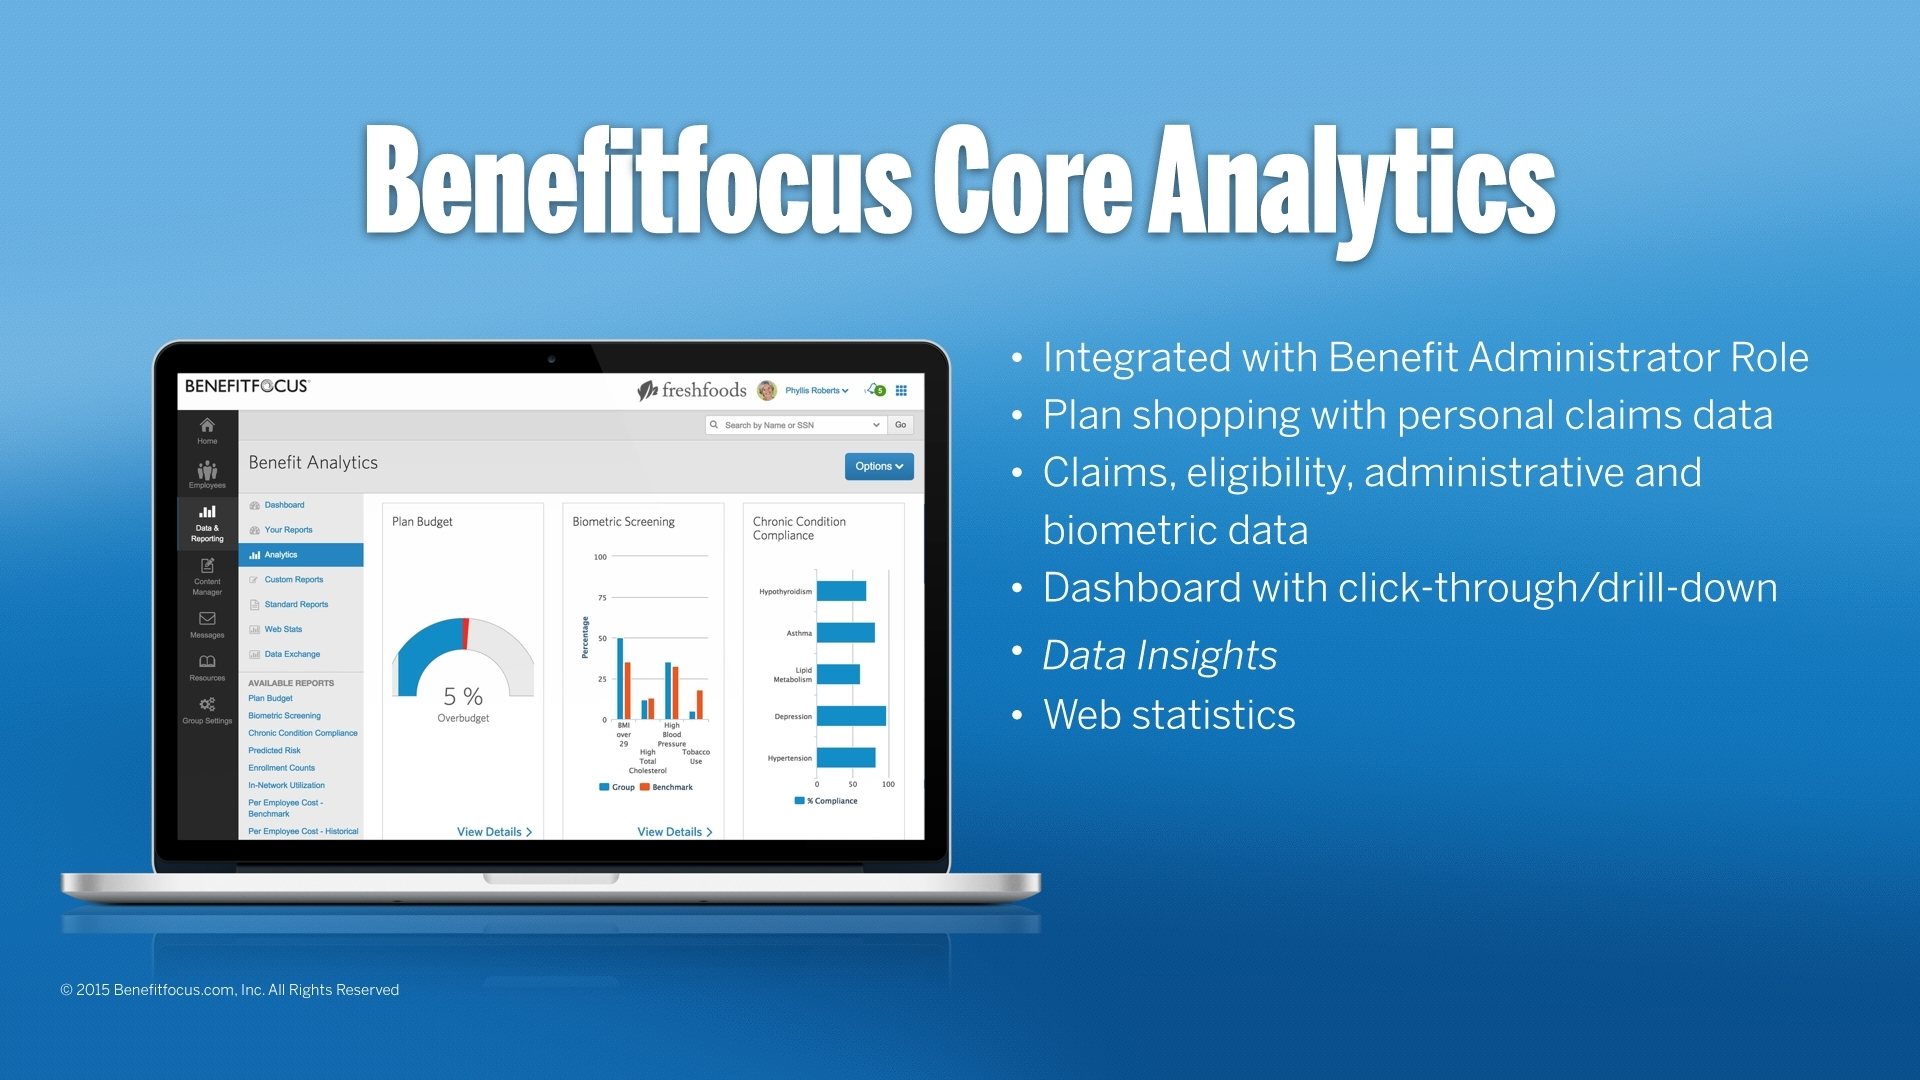 All New Data Analytics Tool Helps Companies Identify and Contain Healthcare Costs